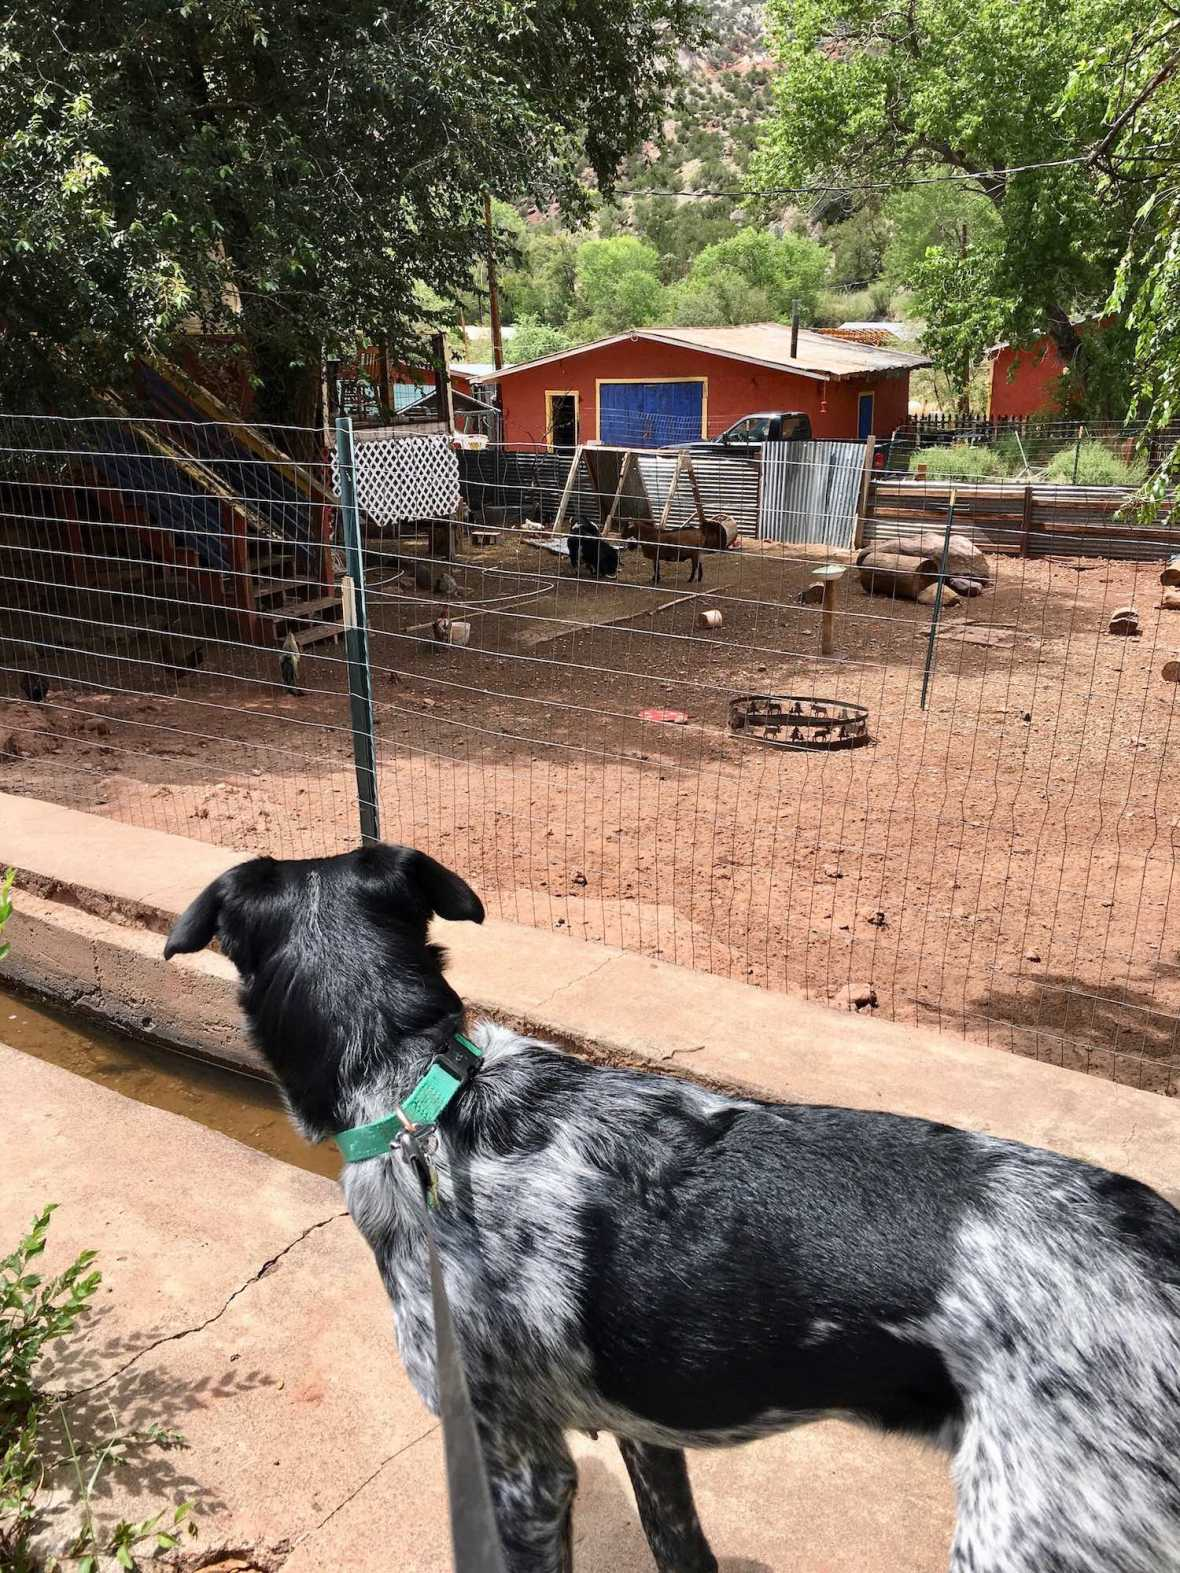 Juniper checks out the chicken and goat pen at Jemez Stage Stop Cafe in Jemez Springs, New Mexico